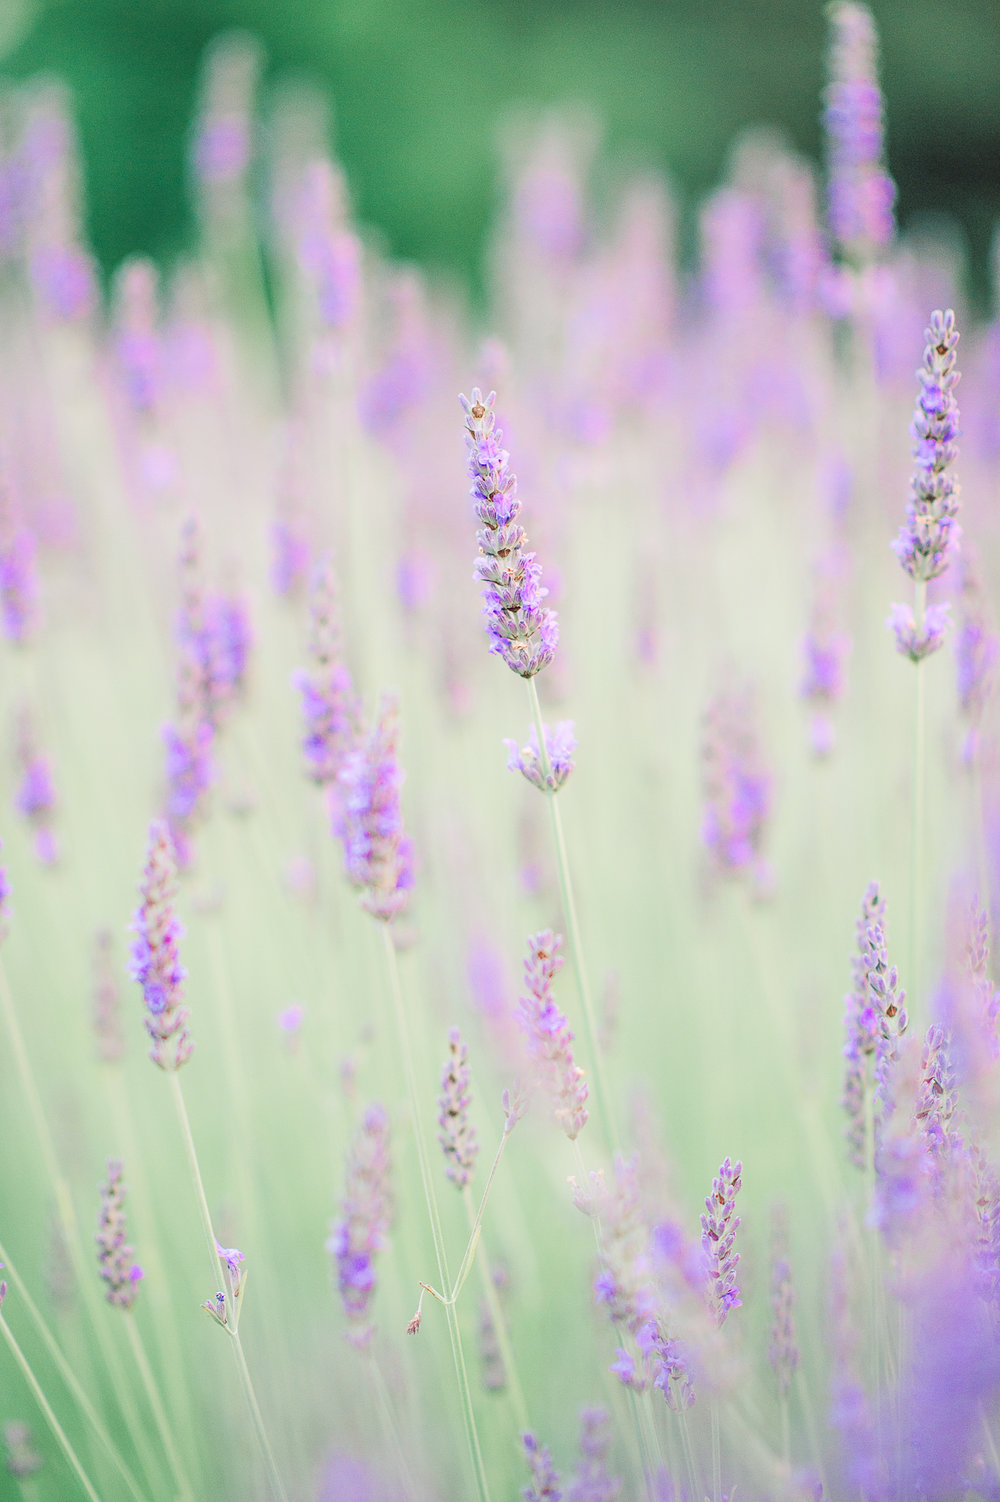 engagement_lavenderfield_youseephotography_LidiaOtto (28a).jpg